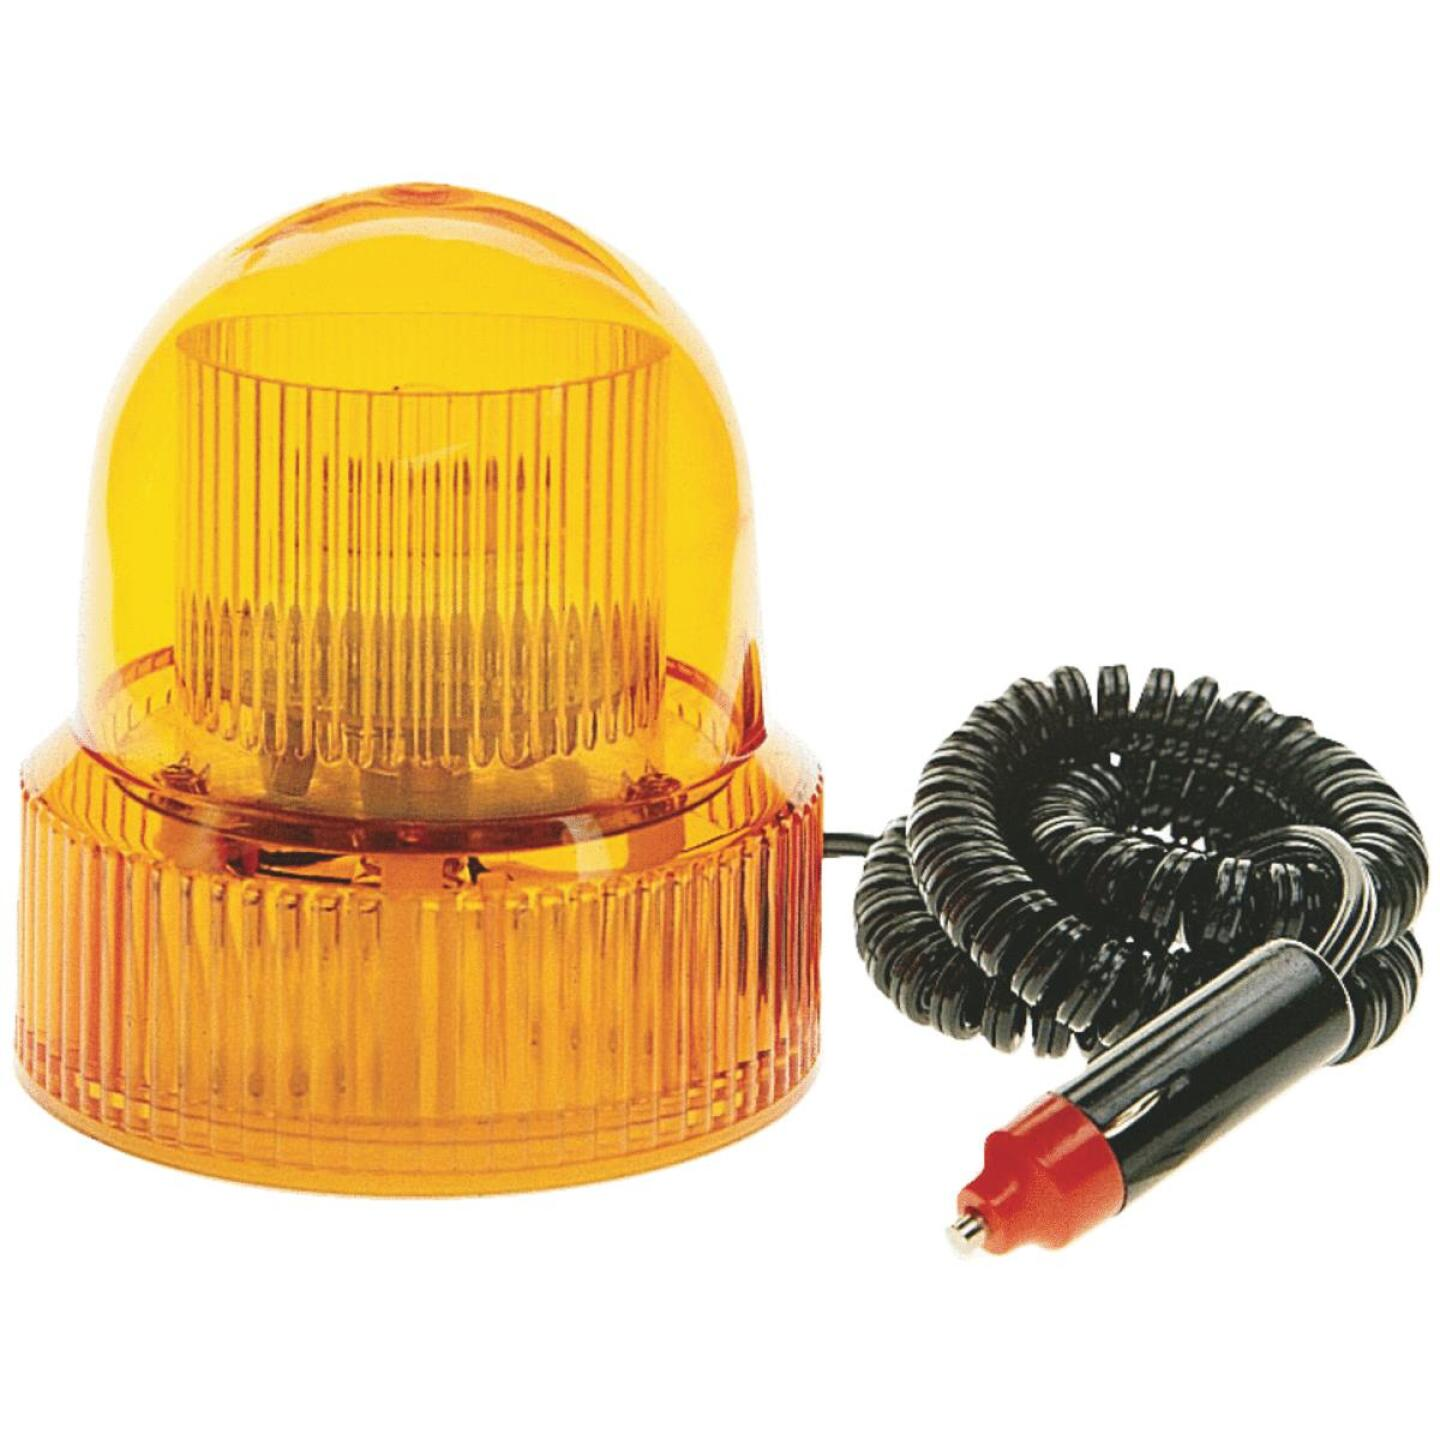 Peterson 12 V. Amber 12 Ft. Flashing Light Image 1